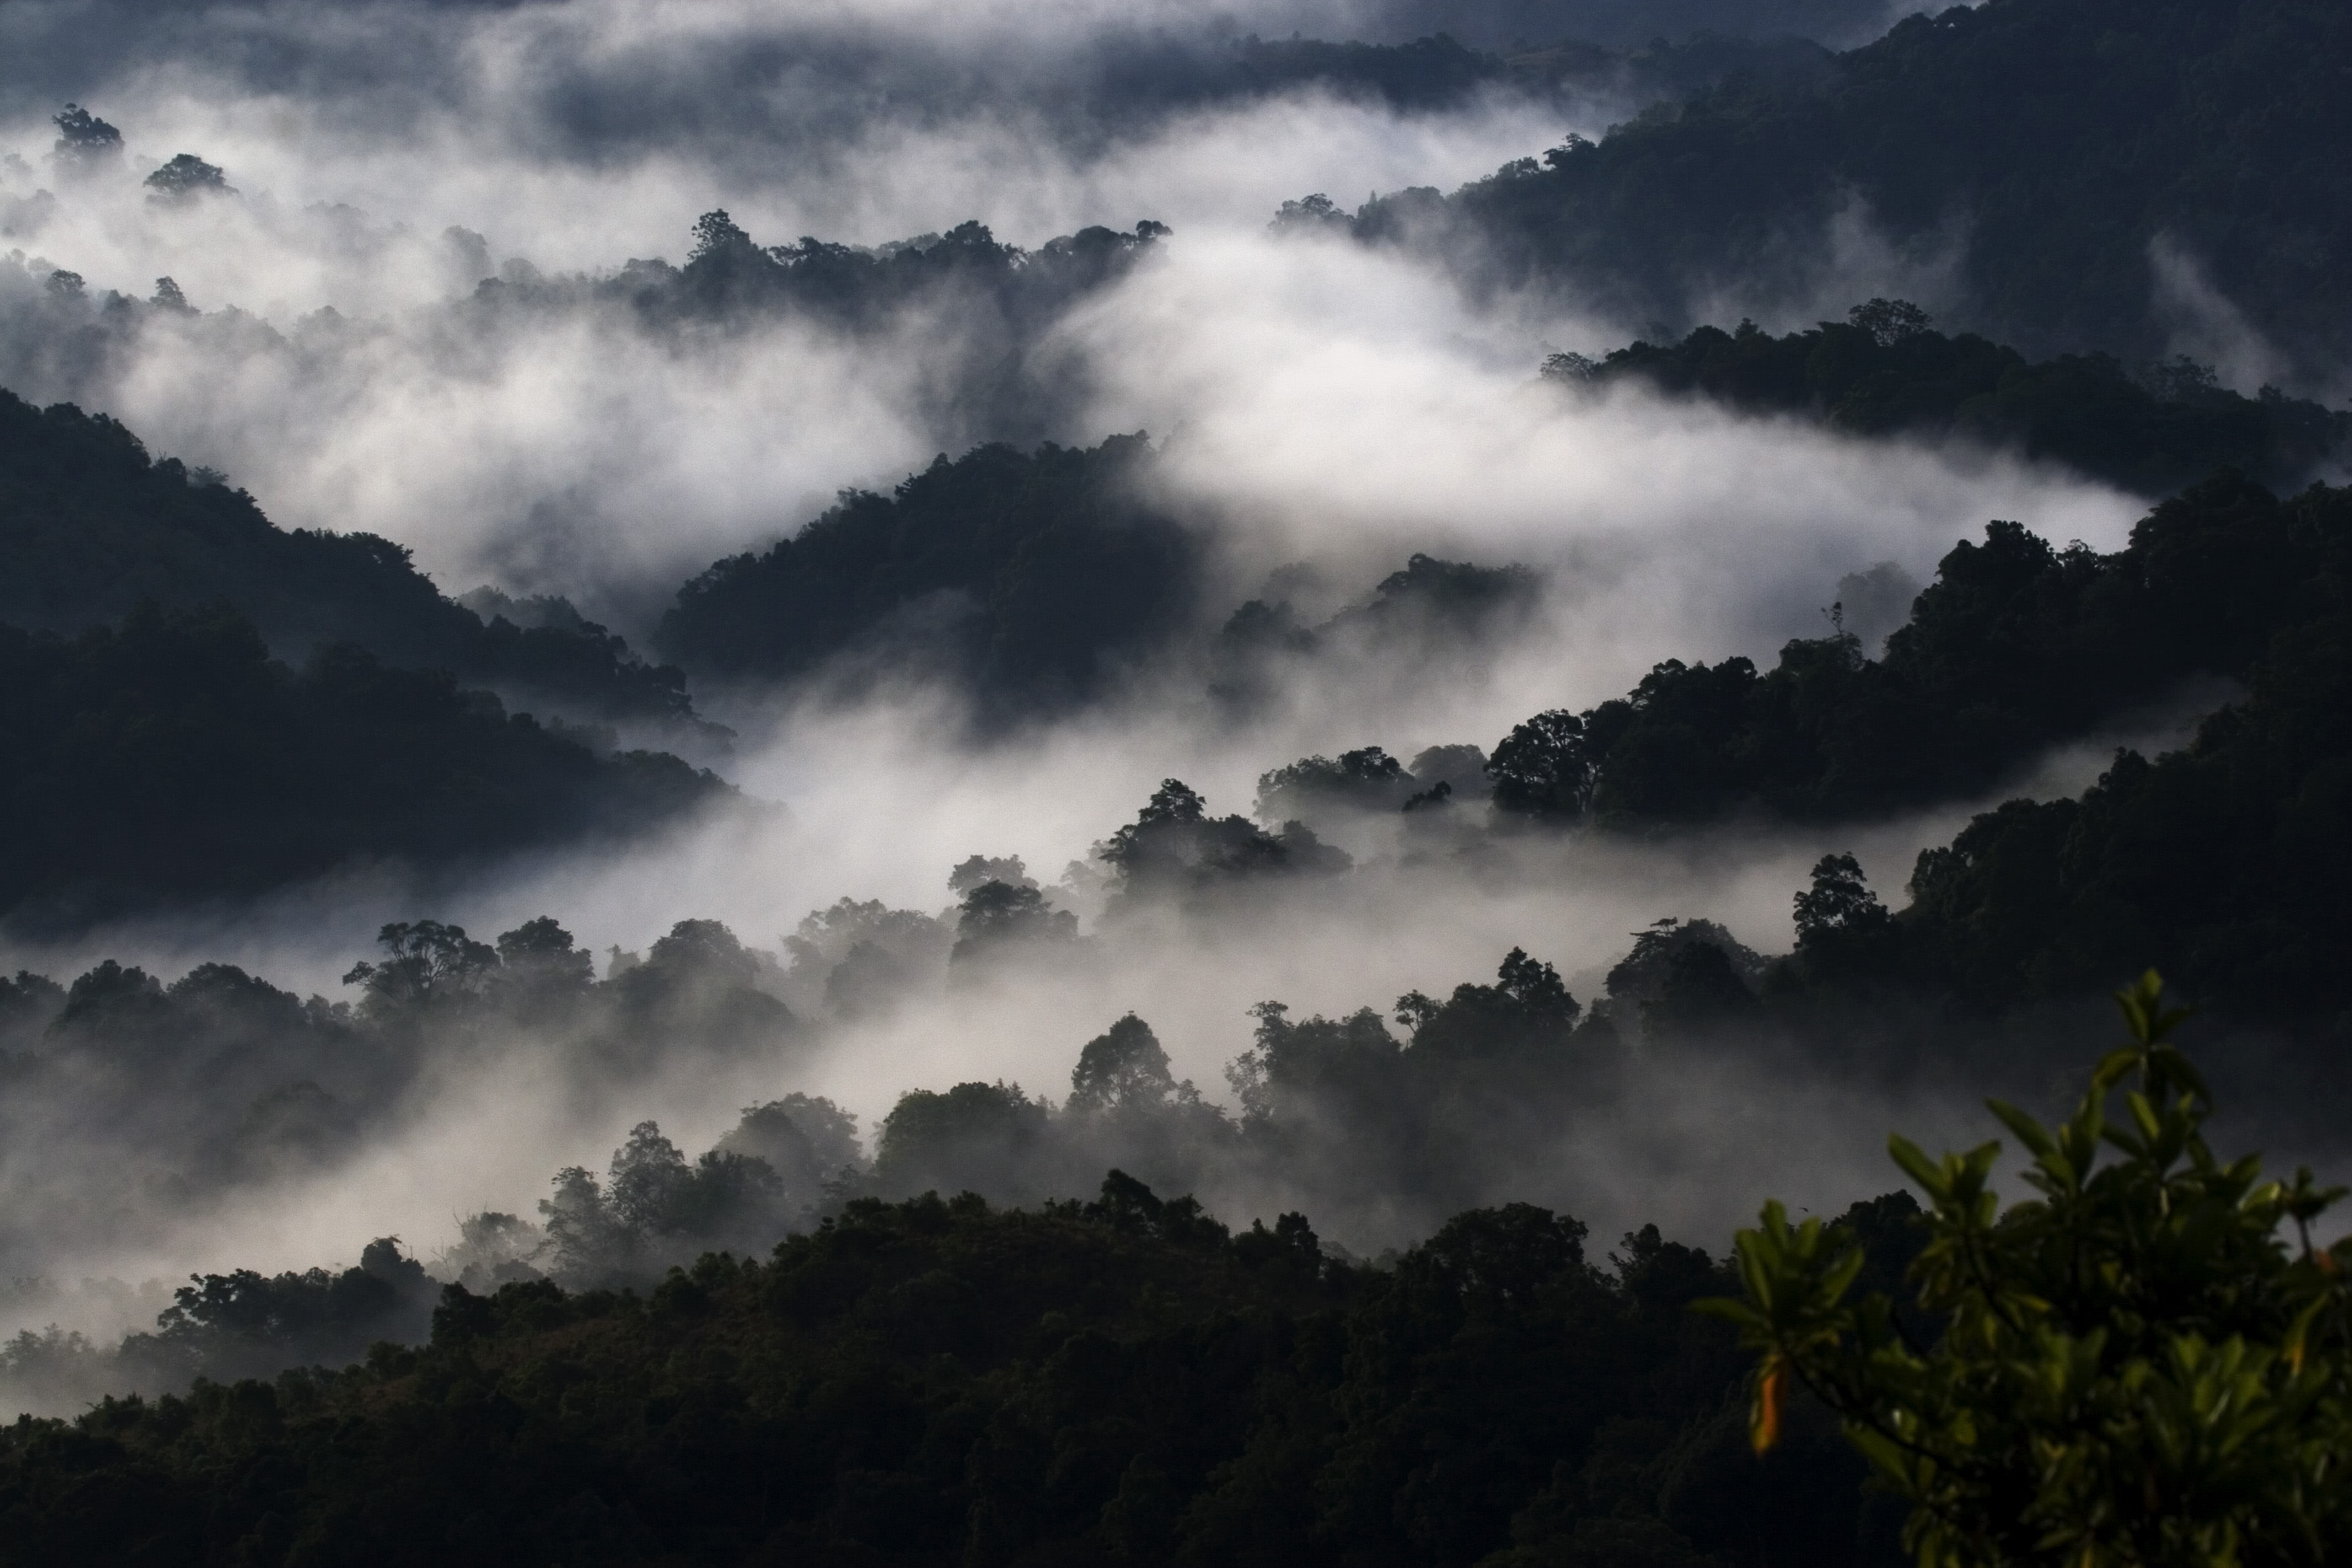 Once almost lost to an ill-conceived proposal enchanting Silent Valley National Park in Kerala is testament to the power of people's movement that saved it. Photo: NP Jayan